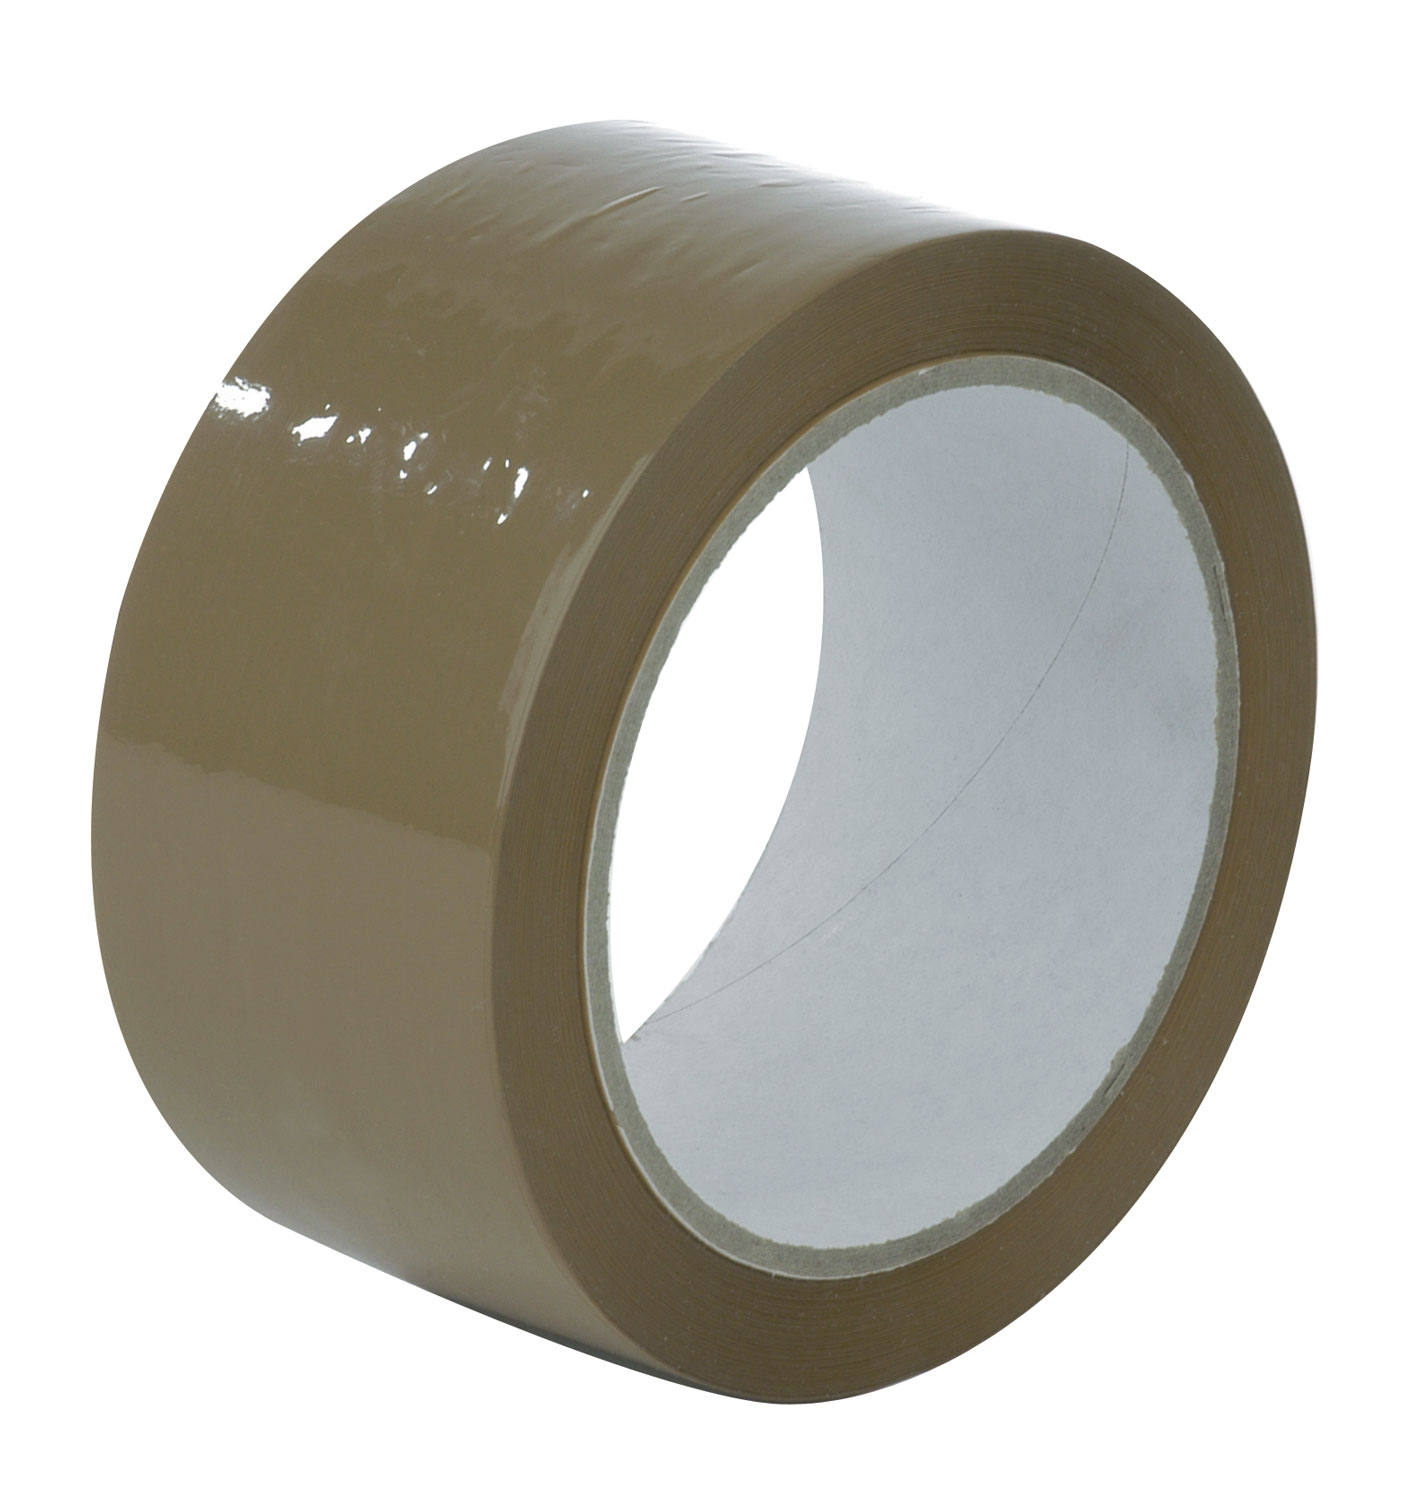 50mm X 66M Brown HD Low Noise Tape - Acrylic Adhesive - 36 rolls per box